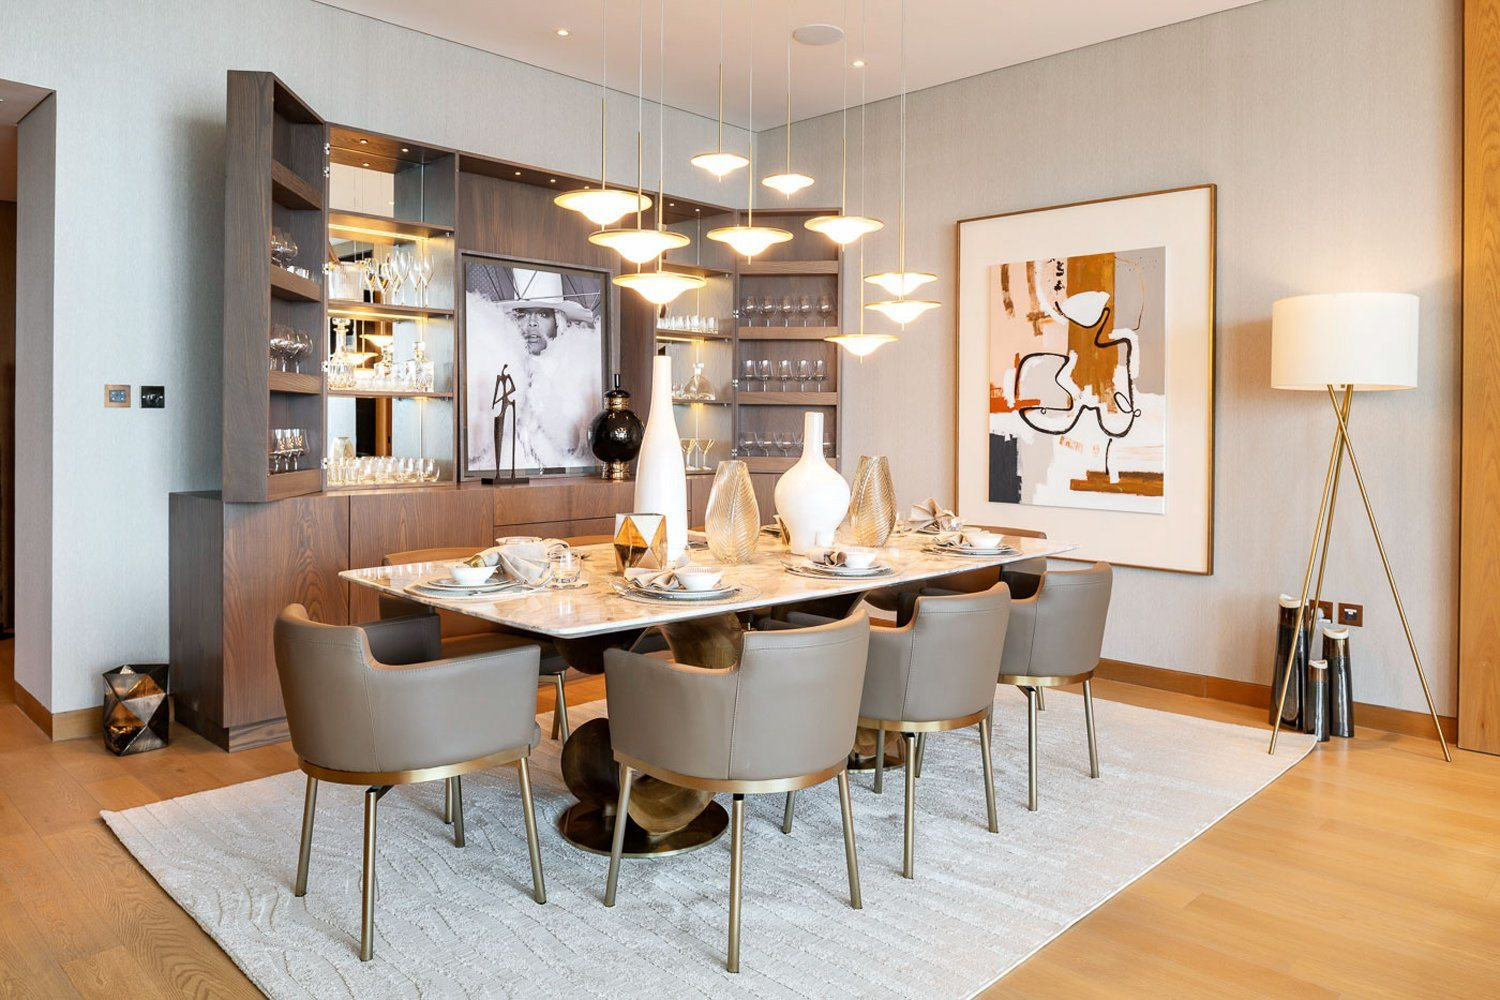 Apartment Dining Table, Upscale Dining Room Tables